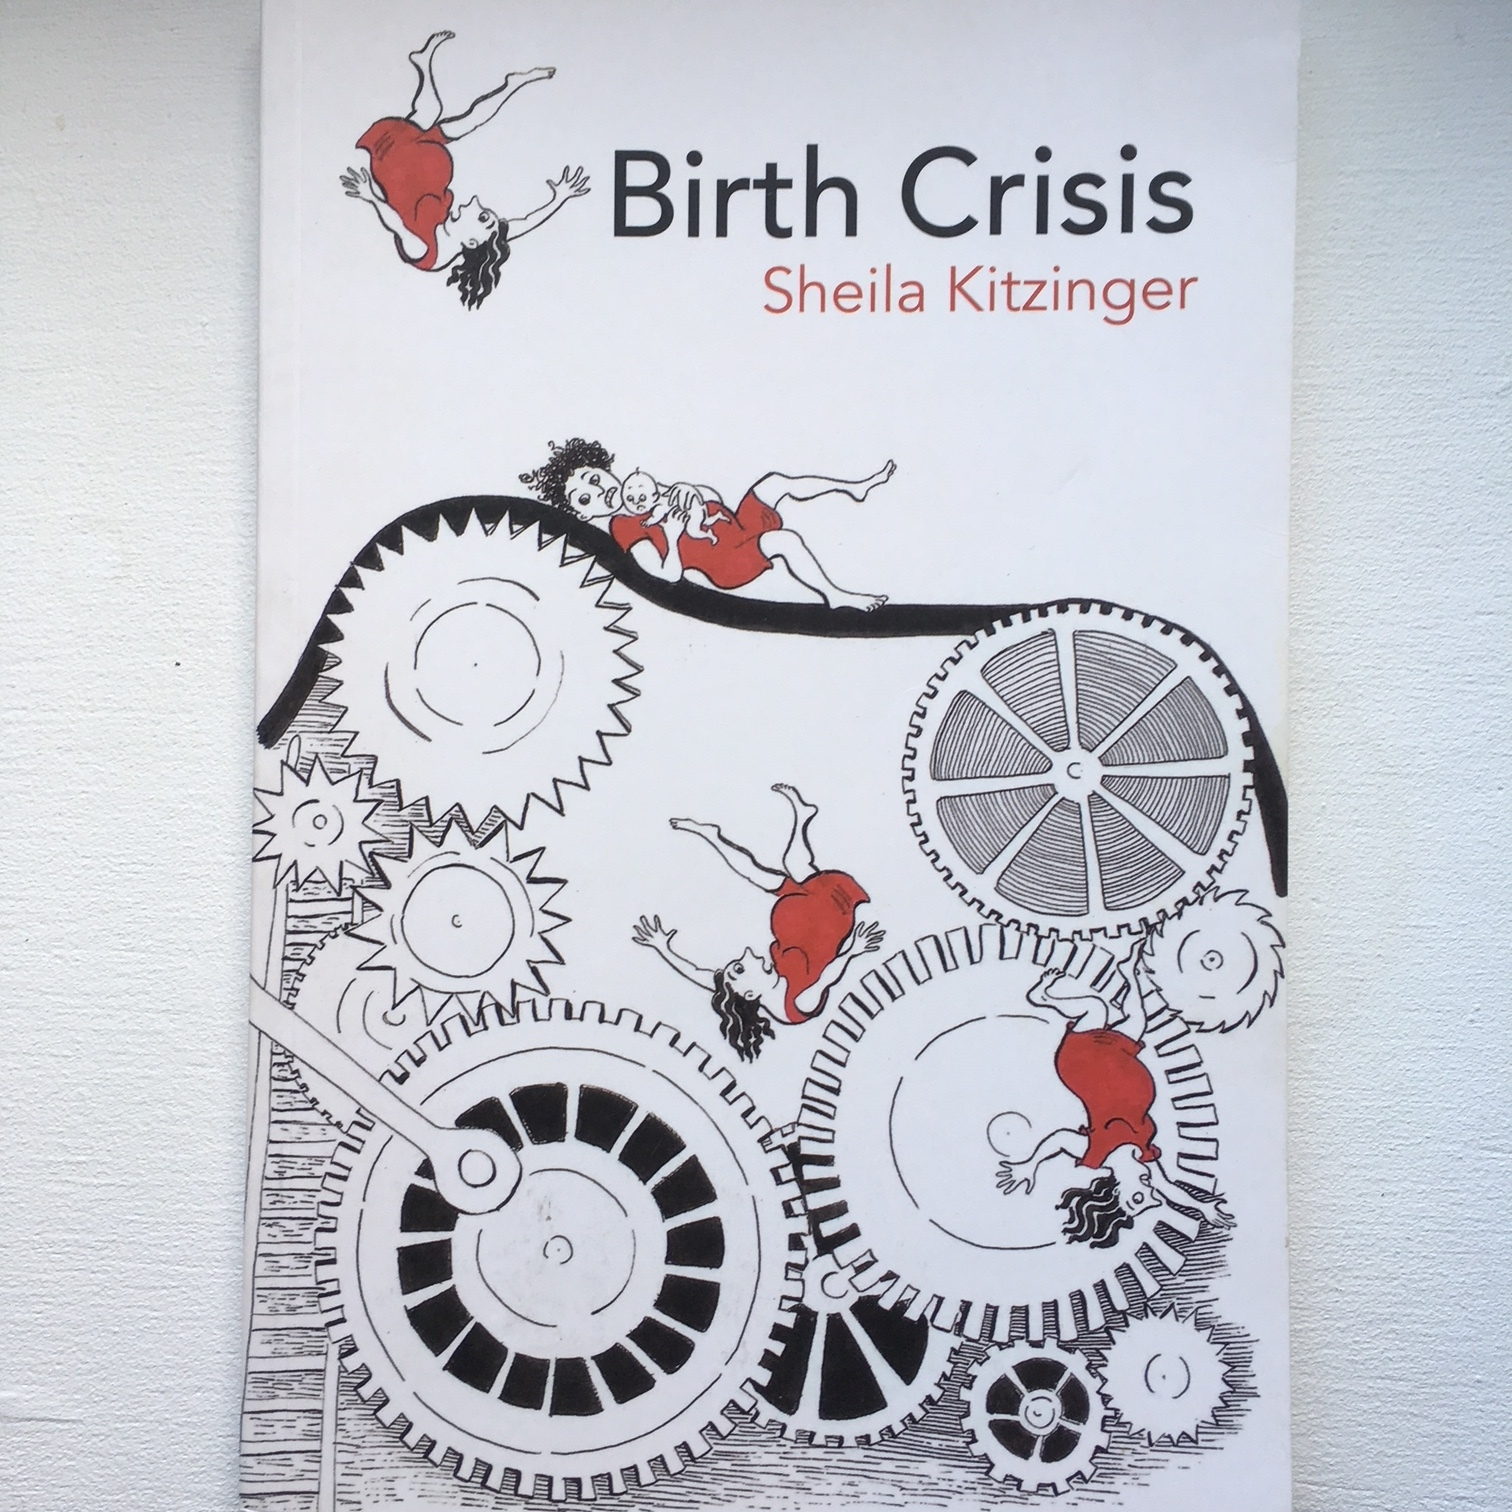 Birth Crisis - Sheila Kitzinger    This book talks about traumatic births and came about as a result of Sheila's experiences listening to women with birth trauma.  If you are still finding your birth difficult, whether or not it was described as traumatic, this book might help you feel less isolated and more able to move forwards.